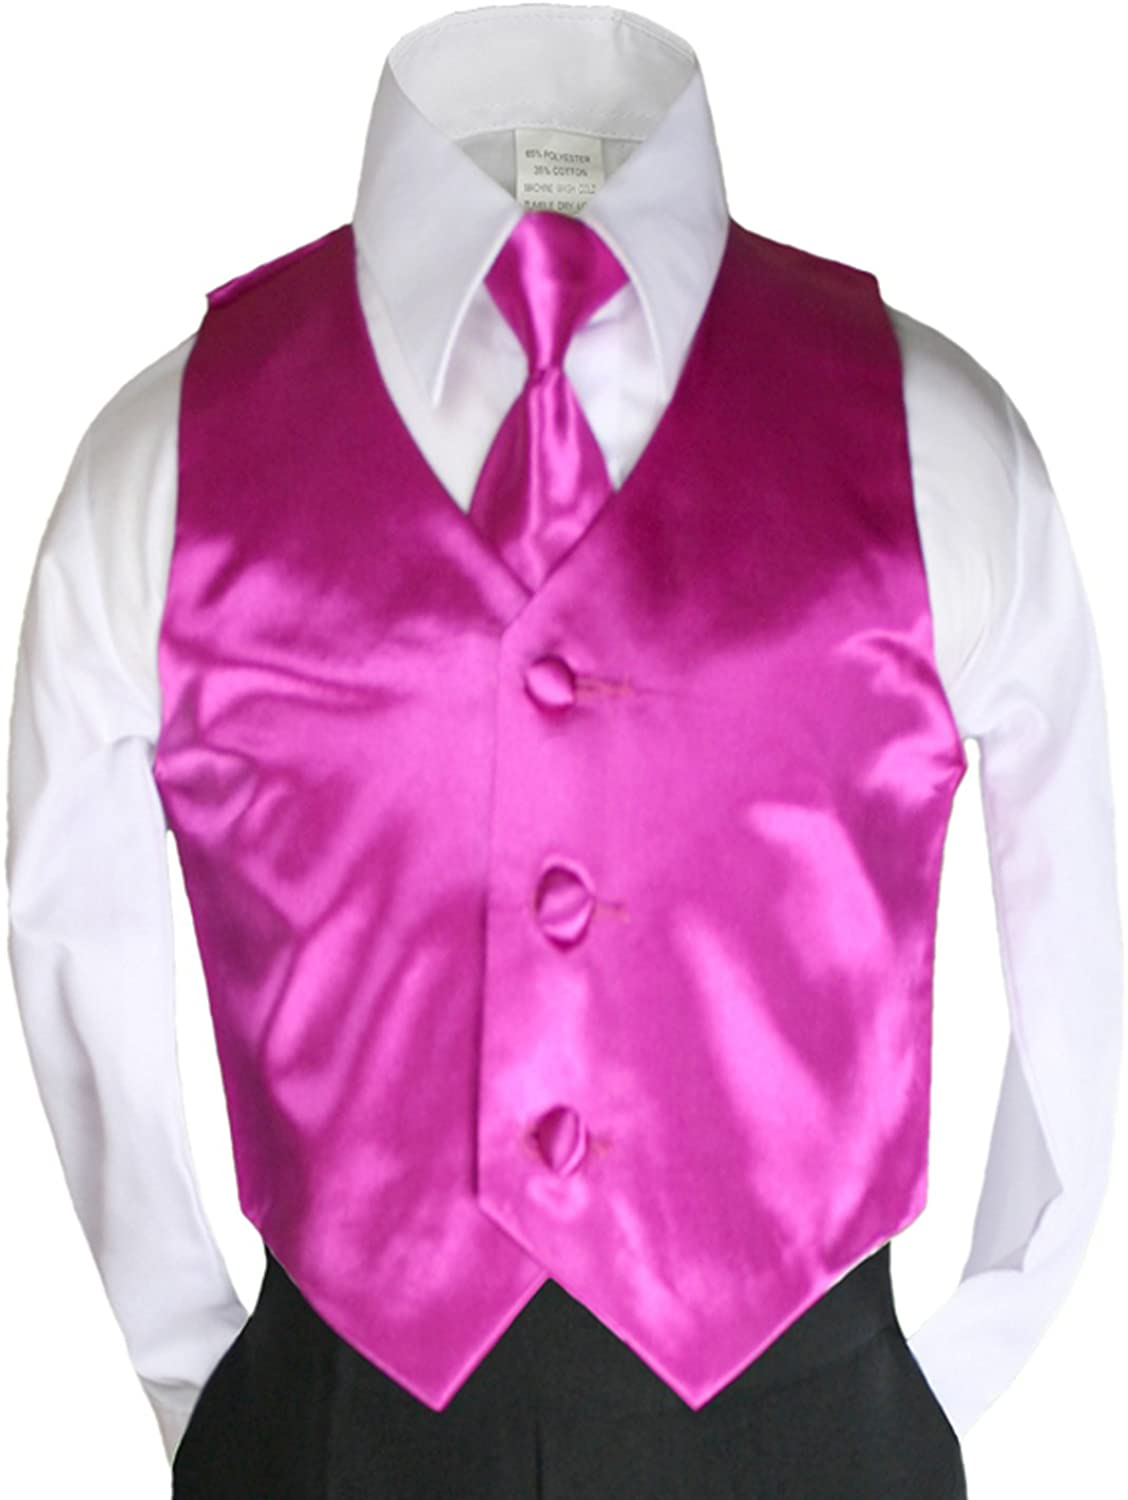 2pc Fuchsia Pink Necktie Vest Set Boy Wedding Graduation Party Formal Suit Sm-20